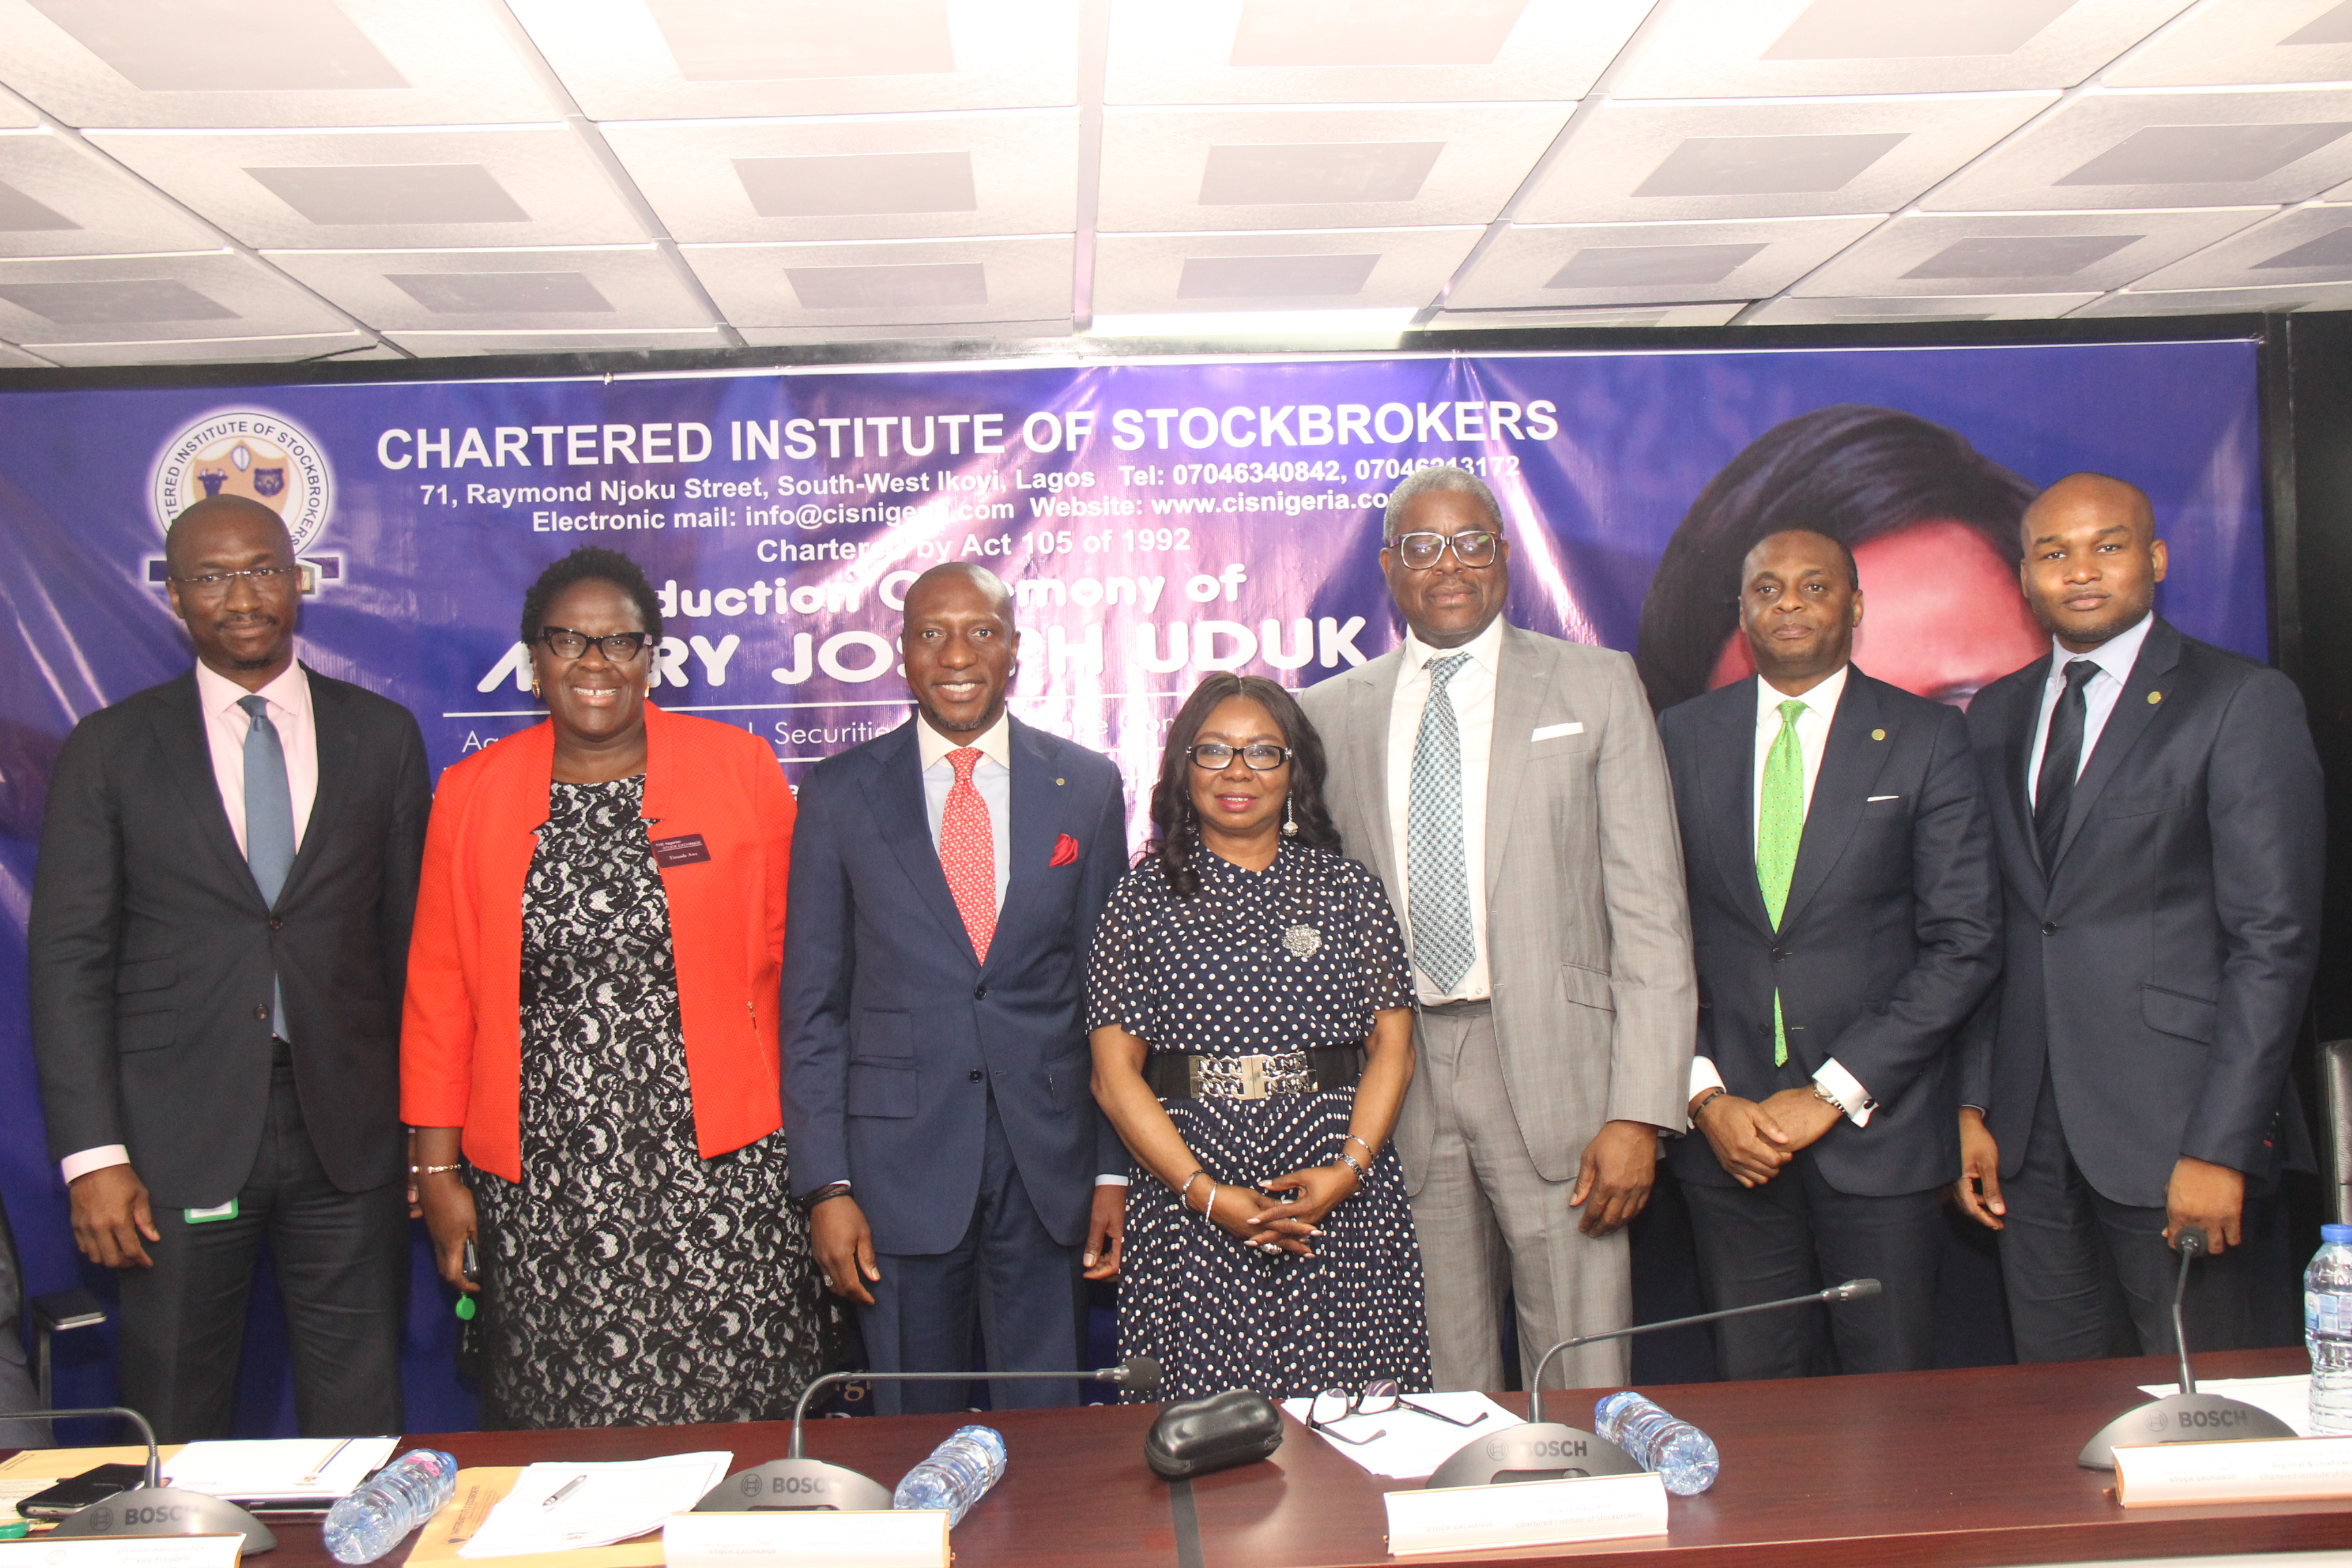 ·         L – R (A) shows Mr. Bola Adeeko, Head, Shared Services Division, The Nigerian Stock Exchange (NSE); Ms. Tinuade Awe, Executive Director, Regulation, NSE; Mr. Oscar N. Onyema, OON, Chief Executive Officer, NSE; Ms. Mary Uduk, Acting Director General, Securities and Exchange Commission (SEC); Otunba Abimbola Ogunbanjo, President, NSE; Mr. Jude Chiemeka, Divisional Head, Trading Business, NSE and Mr. Olumide Bolumole, Divisional Head, Listing Business, NSE during the induction ceremony of Ms. Mary Uduk, Acting Director General, SEC at the Exchange today in Lagos.